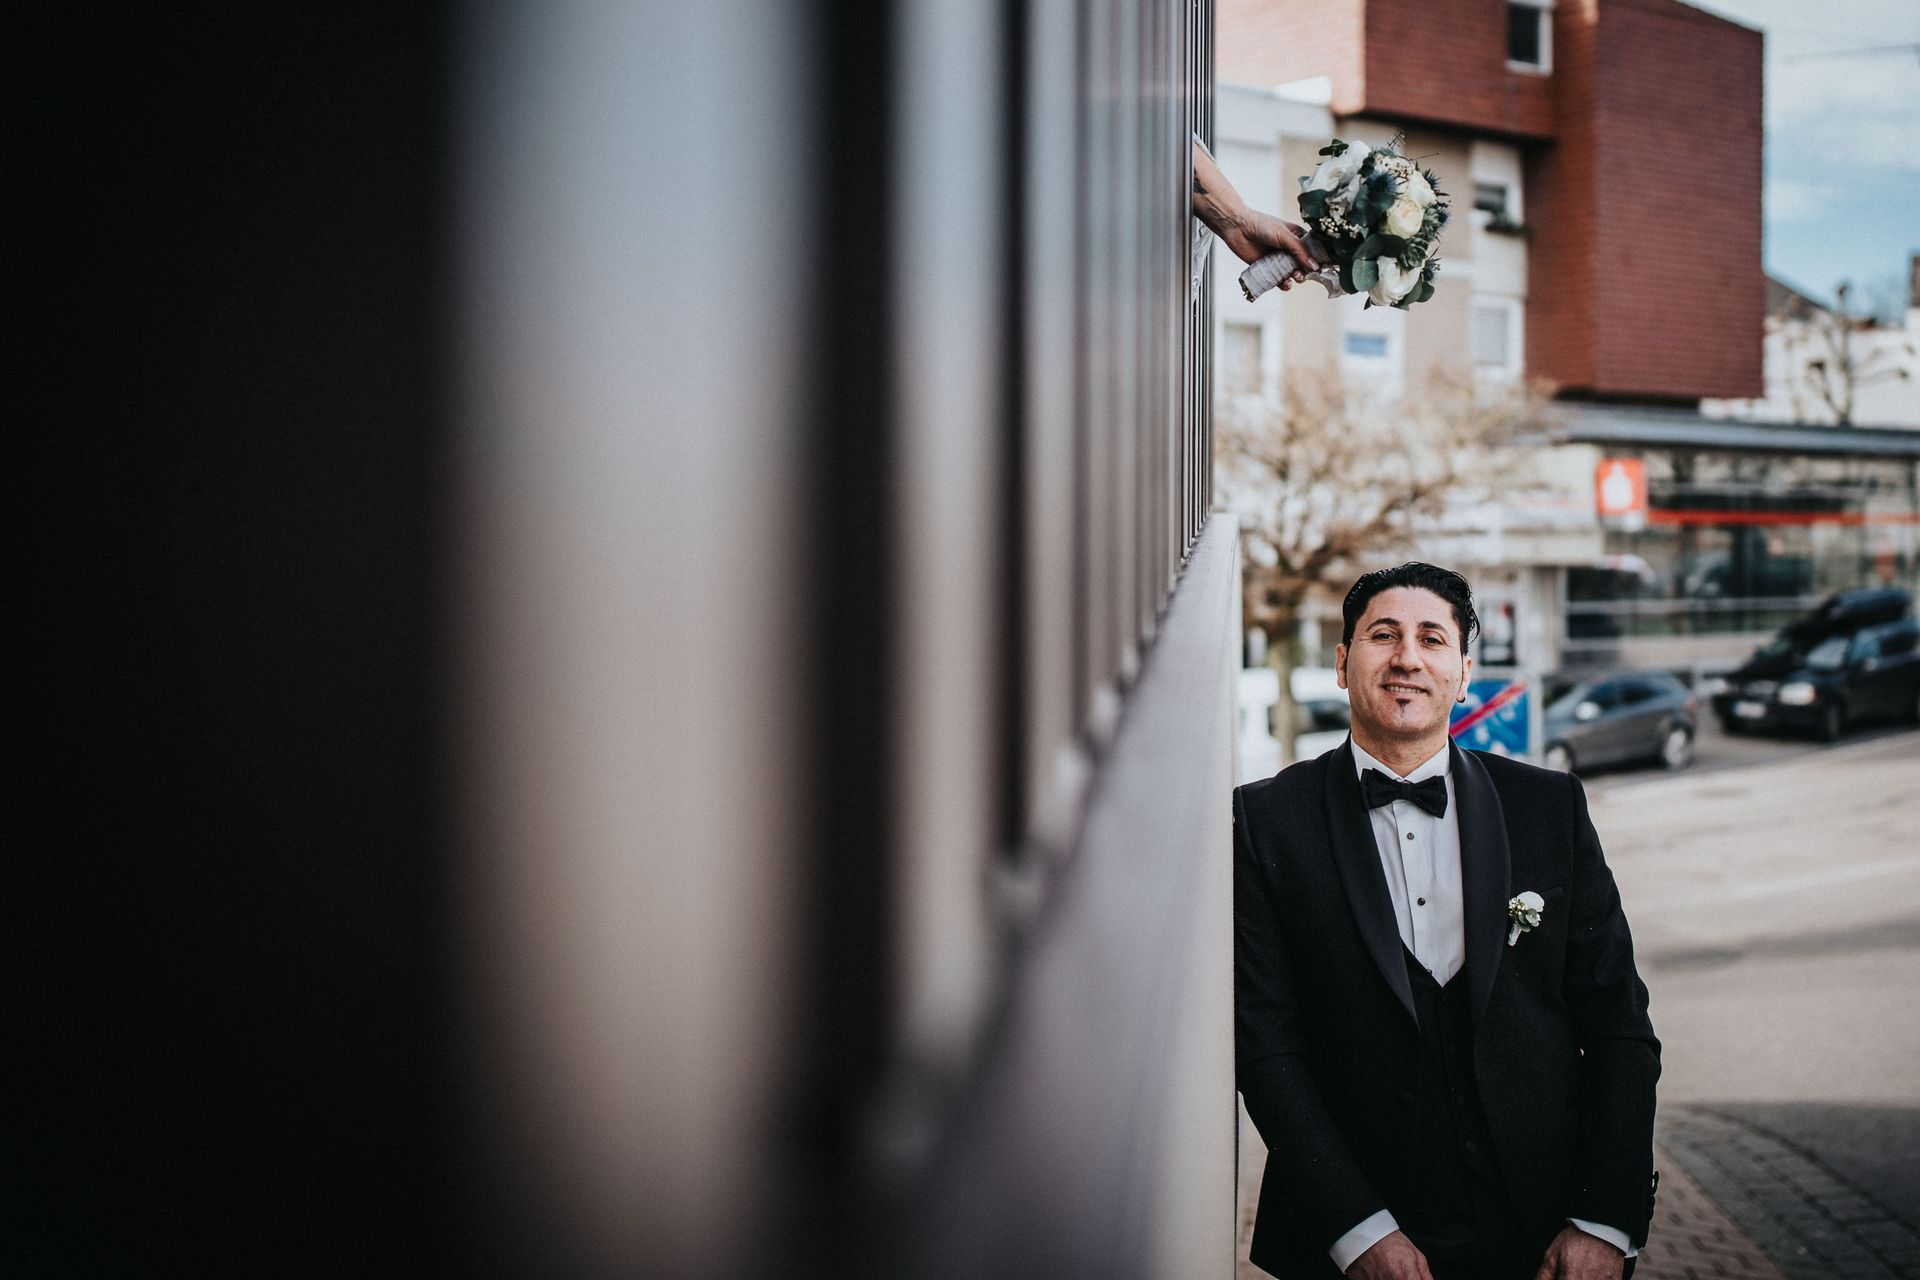 Hotel Restaurant Elopement Venue Images - Schwanen Köngen | The groom poses for a portrait in the city's streets